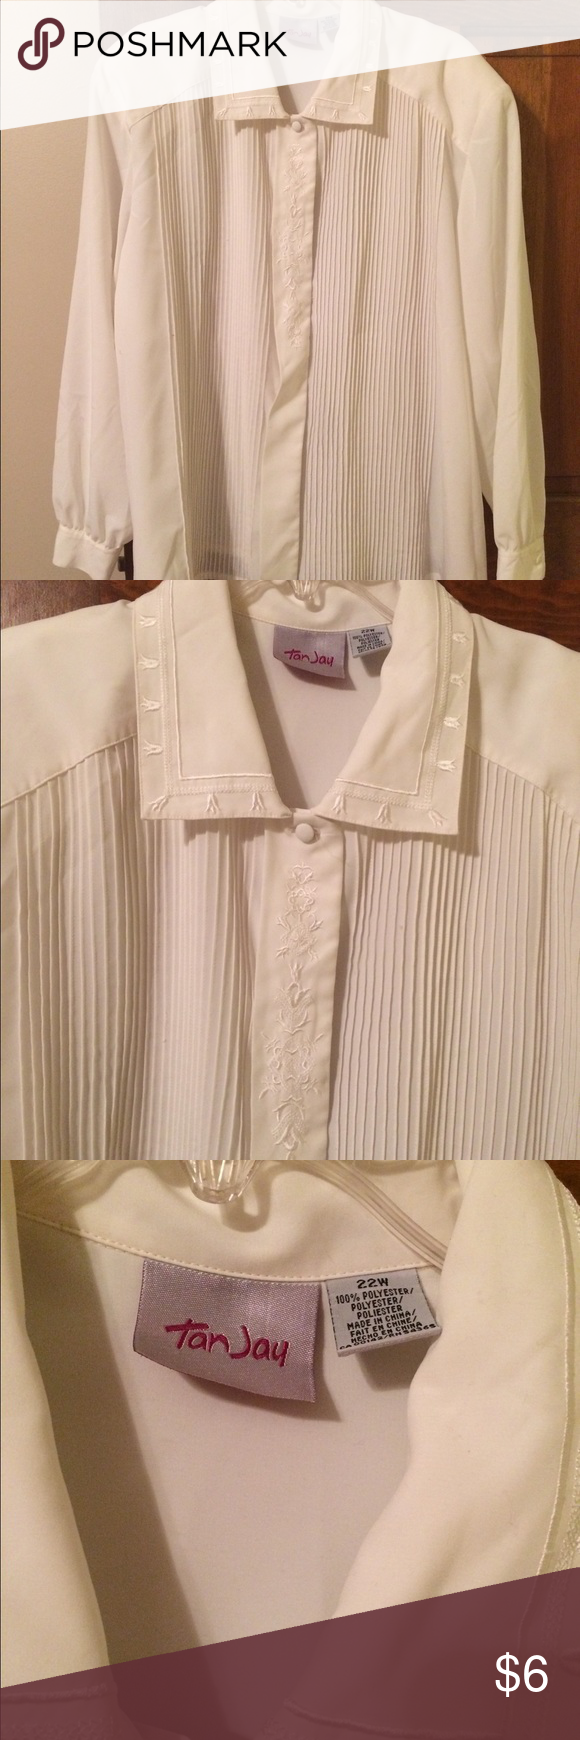 Cream long sleeve blouse size 22W Long sleeved cream colored dress blouse with embroidered designs down the front and collar. Hidden buttons down the front. Pleats run down the front. Buttons on the cuffs. tan jay Tops Blouses